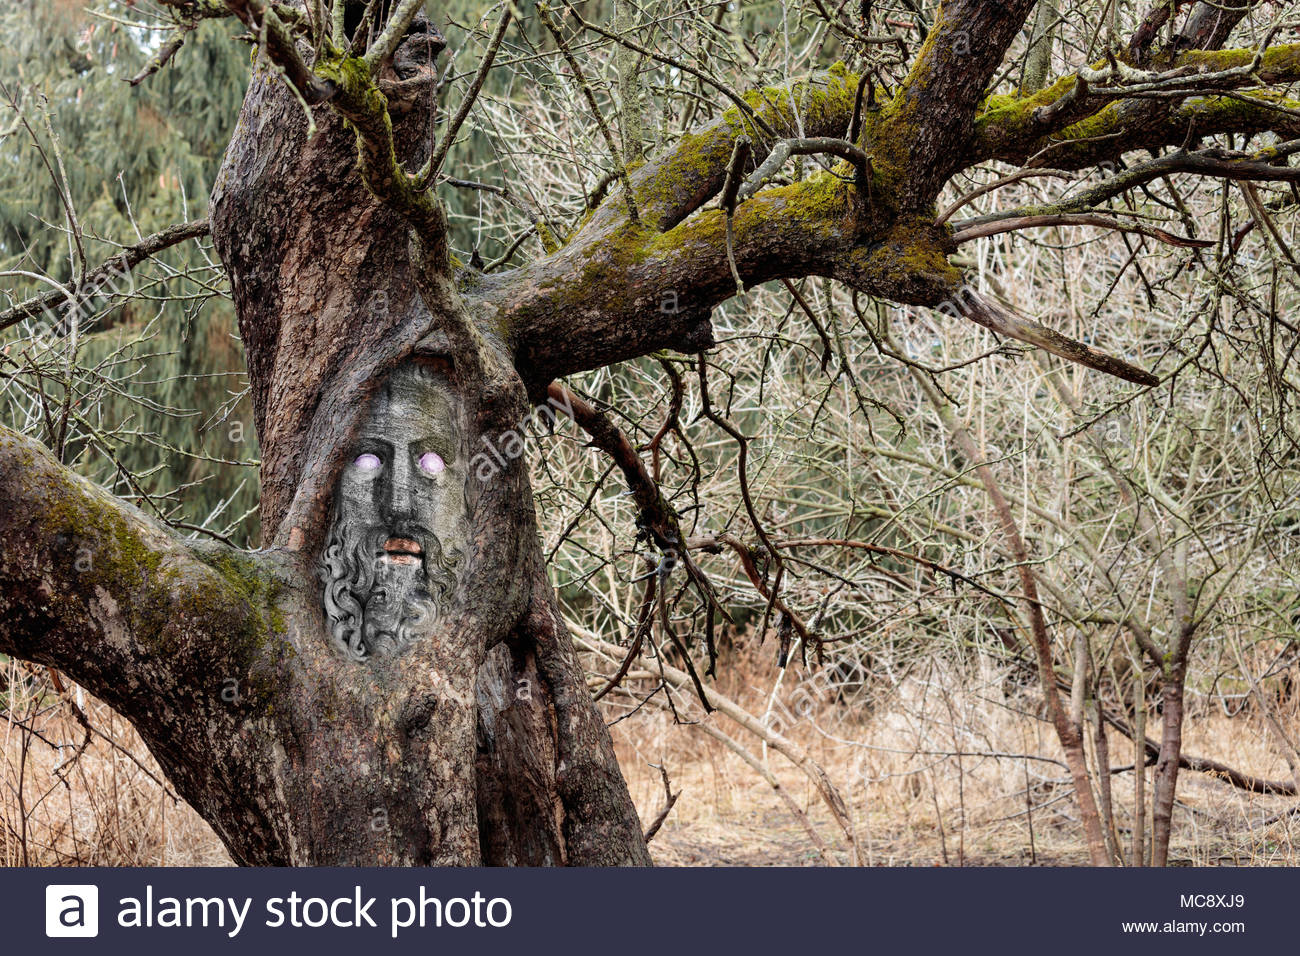 tree-deity-talking-tree-forest-spirit-ol